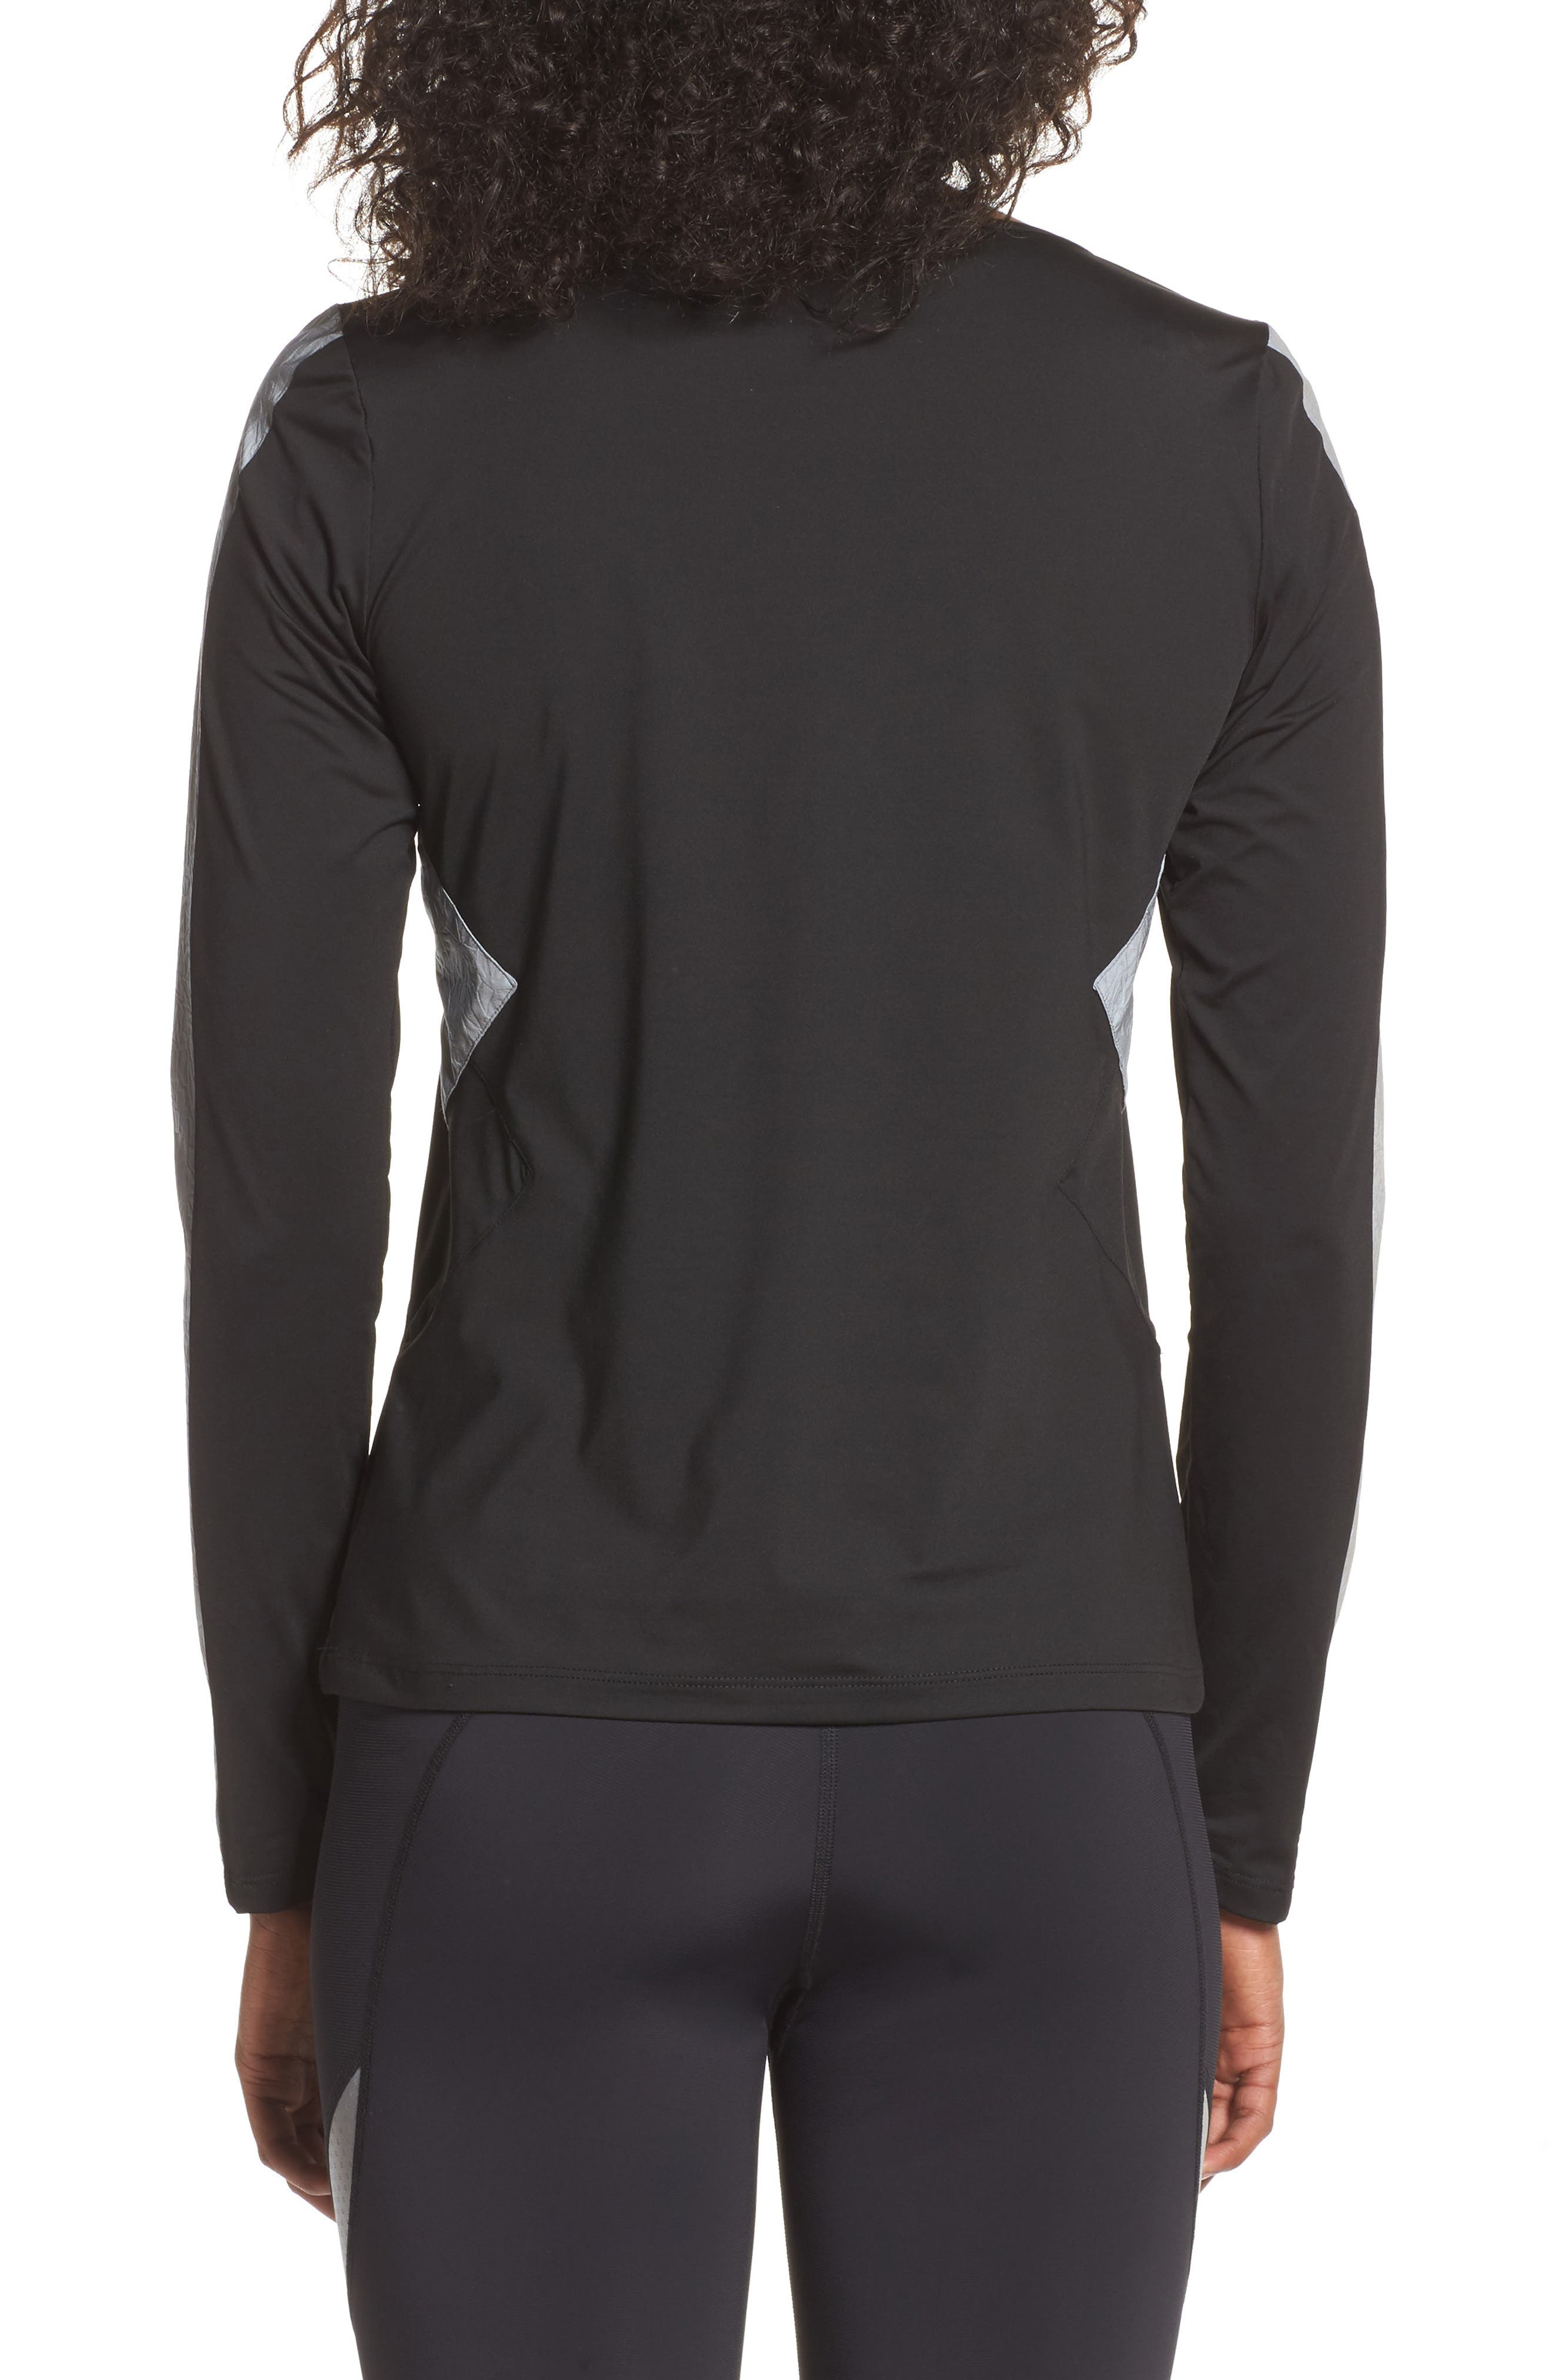 Alternate Image 2  - BoomBoom Athletica Reflective Body-Con Long Sleeve Tee